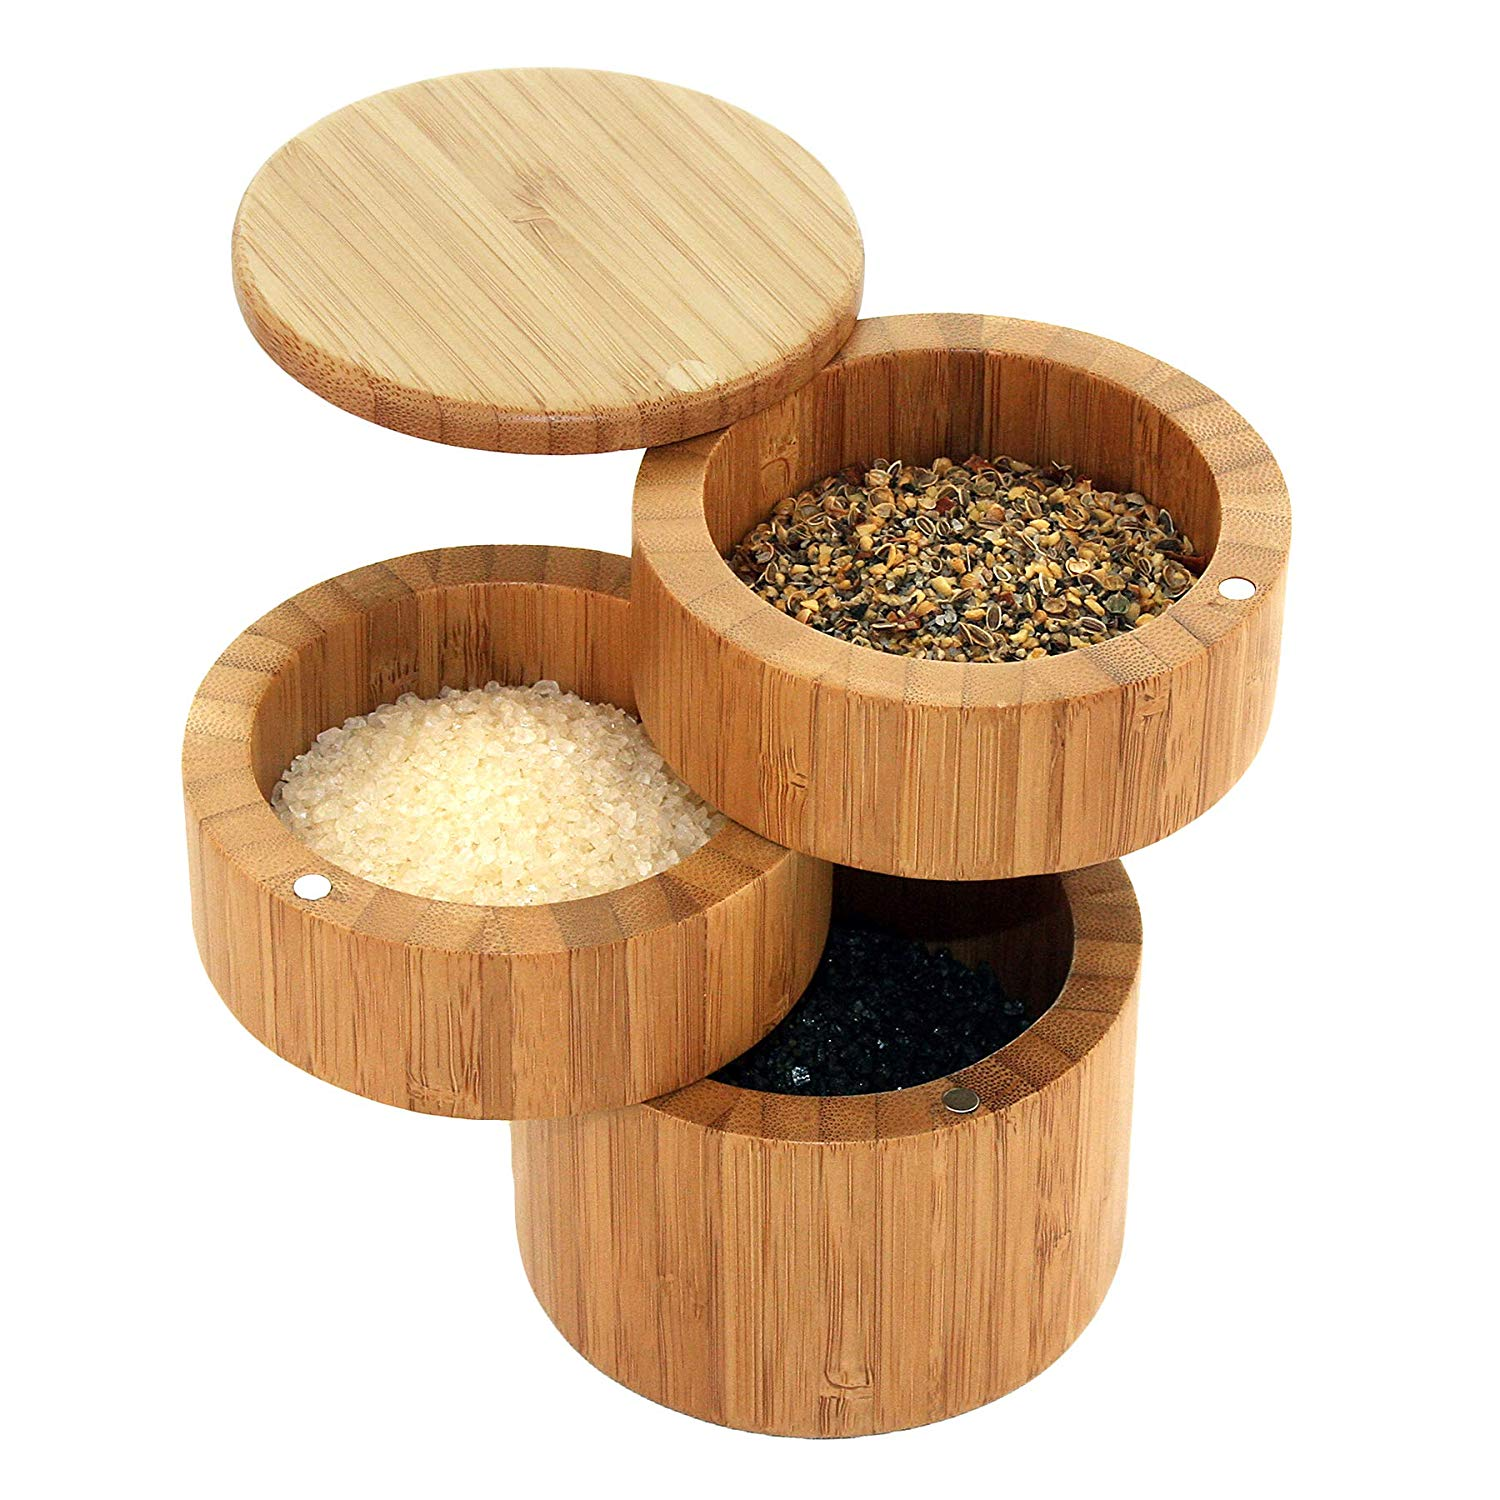 Totally Bamboo Triple Salt Box, Three Tier Bamboo Storage Box with Magnetic Swivel Lids